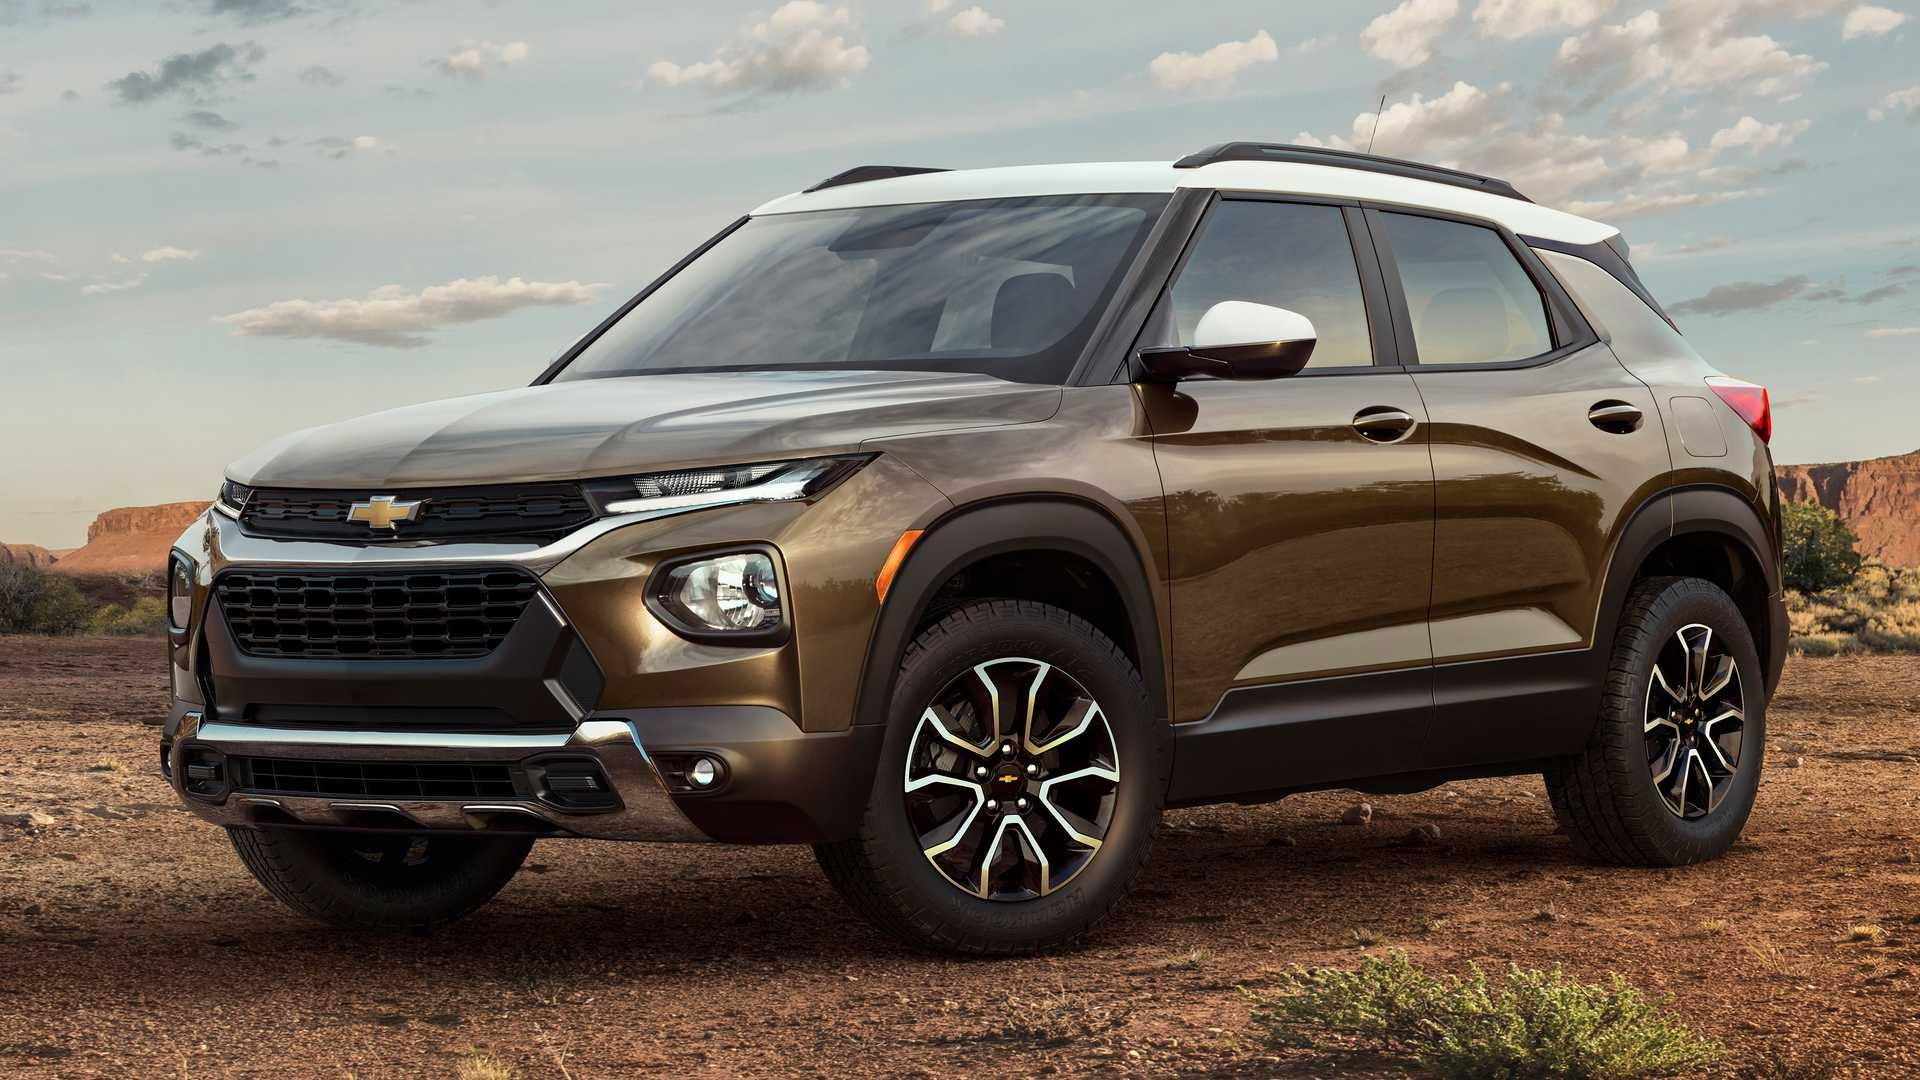 2021 Chevy Trailblazer Pricing Starts At 19 995 Tops Out At 26 395